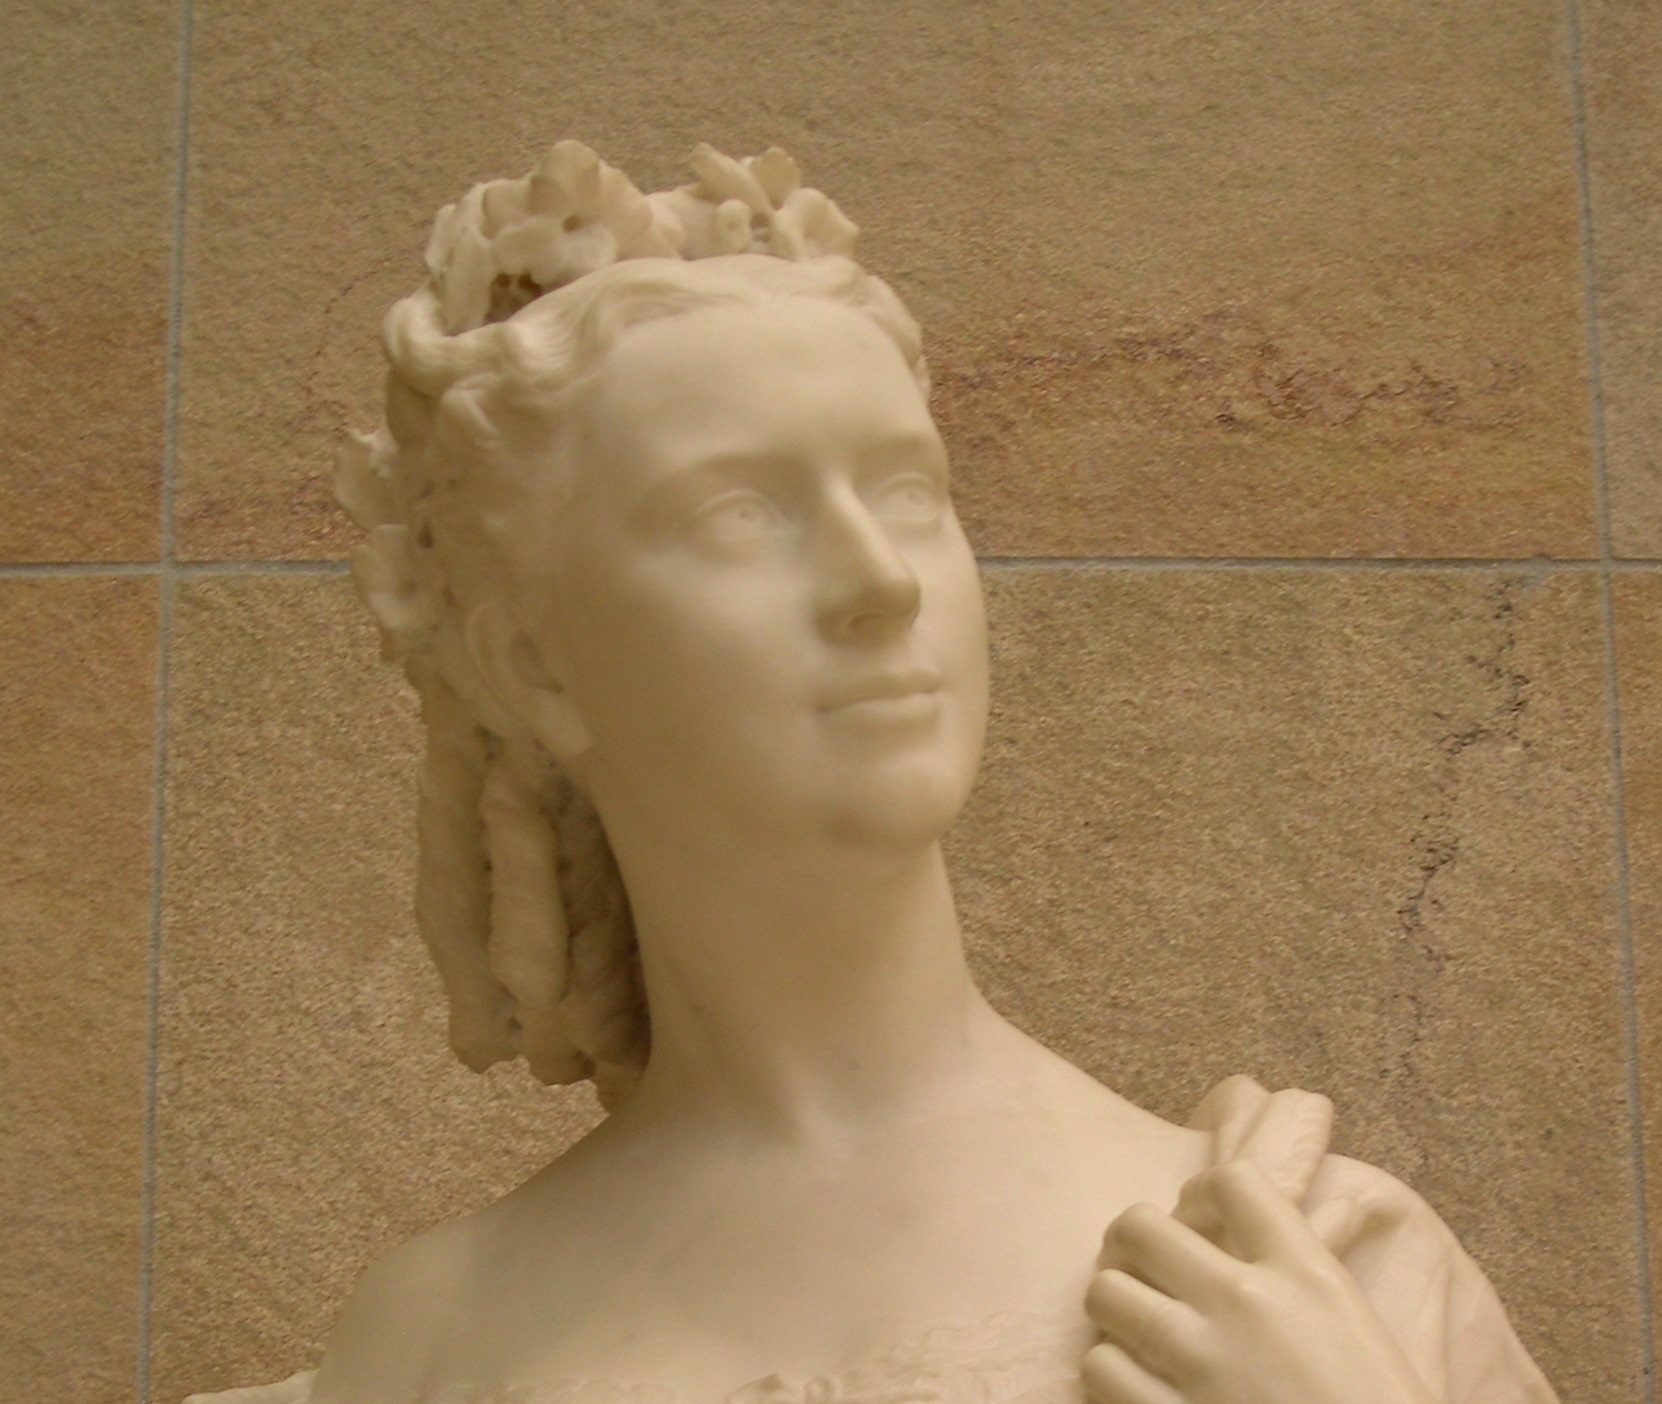 Beautiful on the outside, but nothing hidden shines through. A sculpture at the Musée D'Orsay, Paris, August 2005